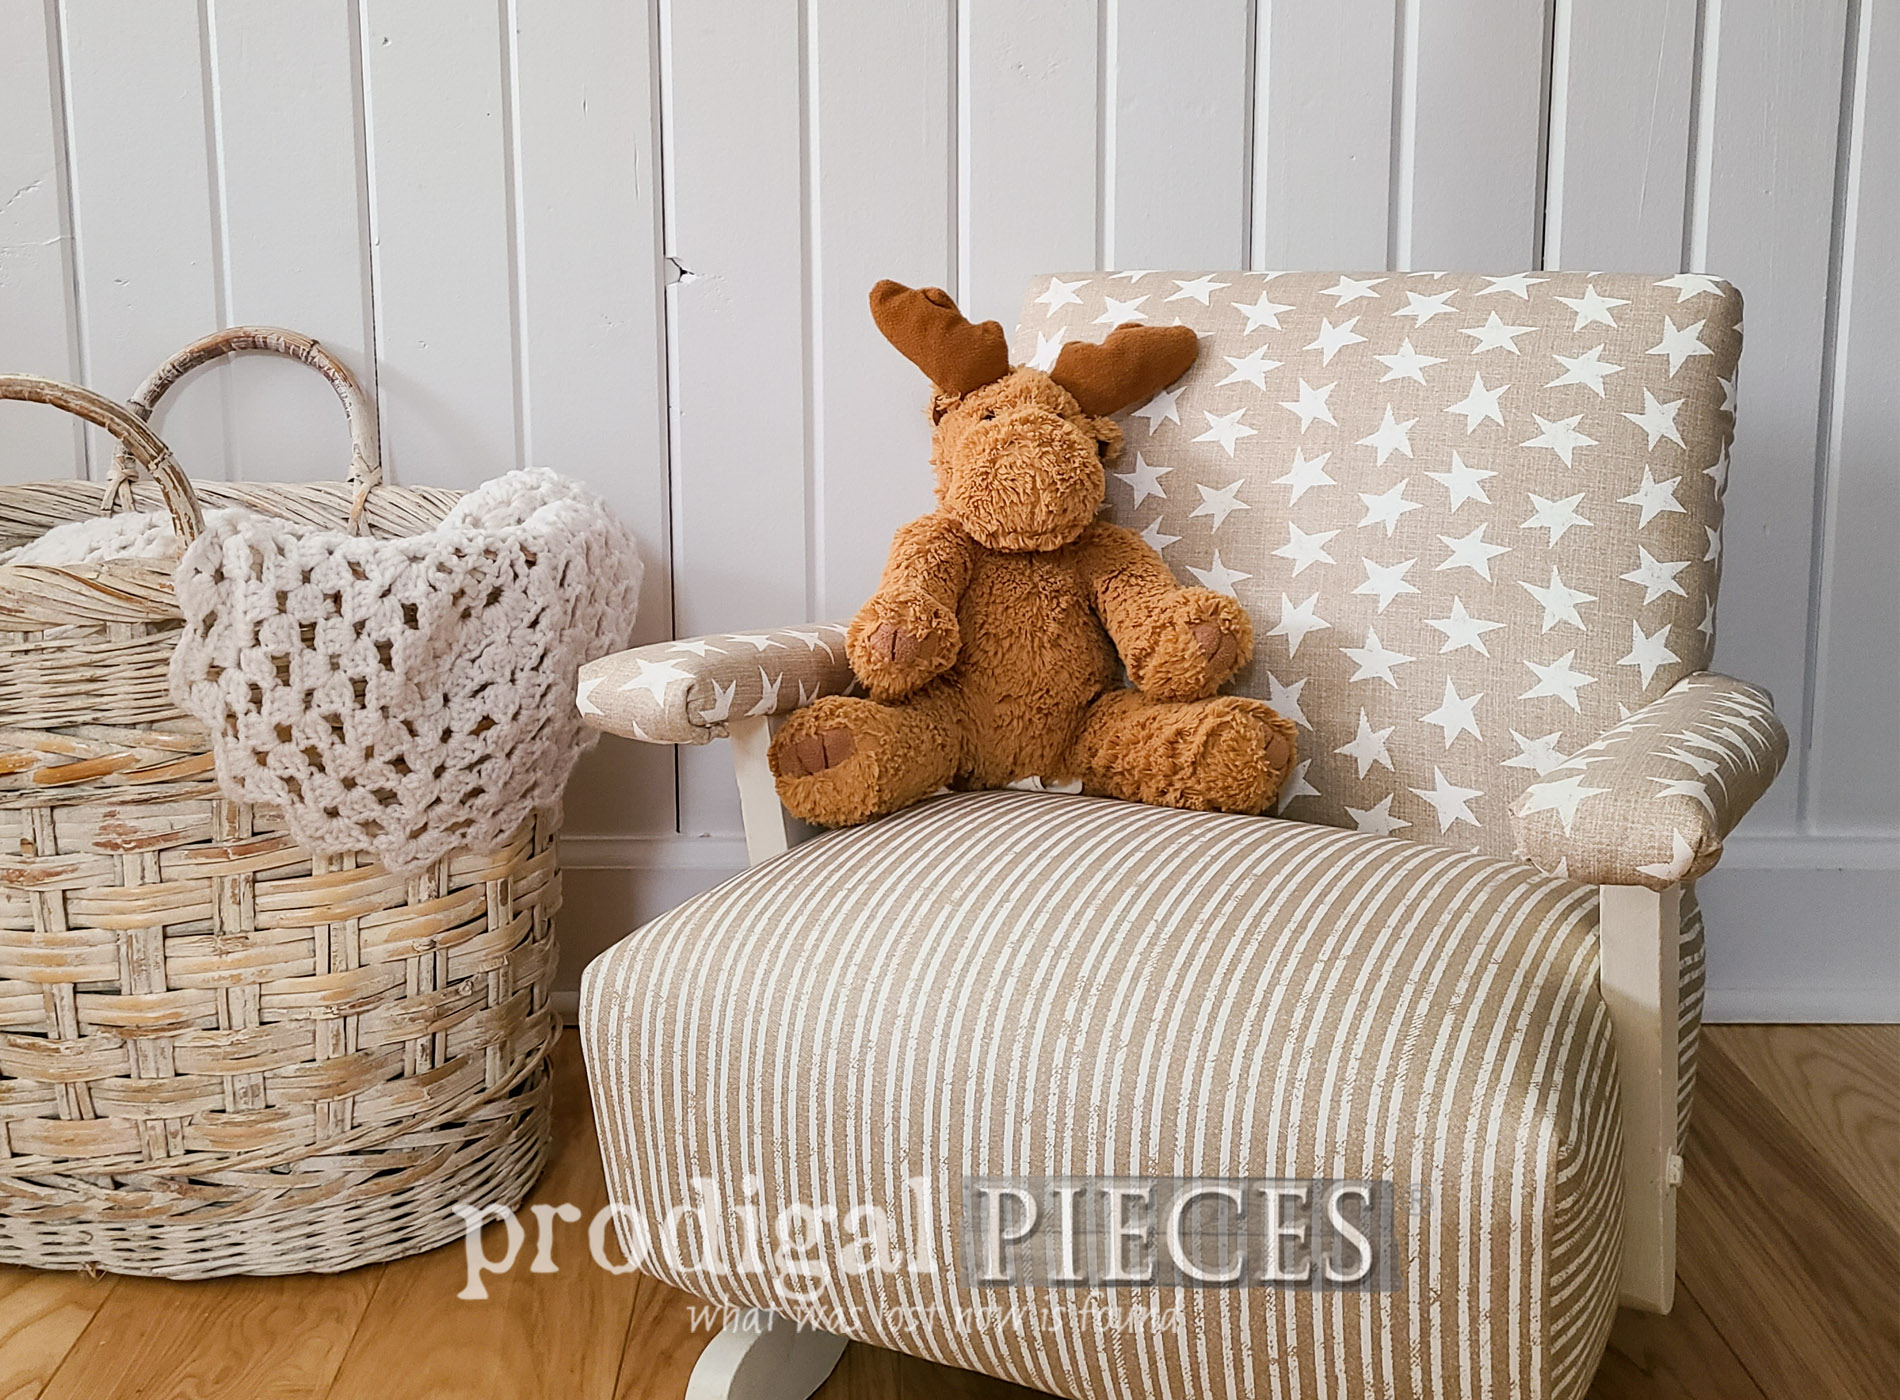 Featured Child's Upholstered Rocking Chair by Larissa of Prodigal Pieces | prodigalpieces.com #prodigalpieces #diy #furniture #kids #home #homedecor